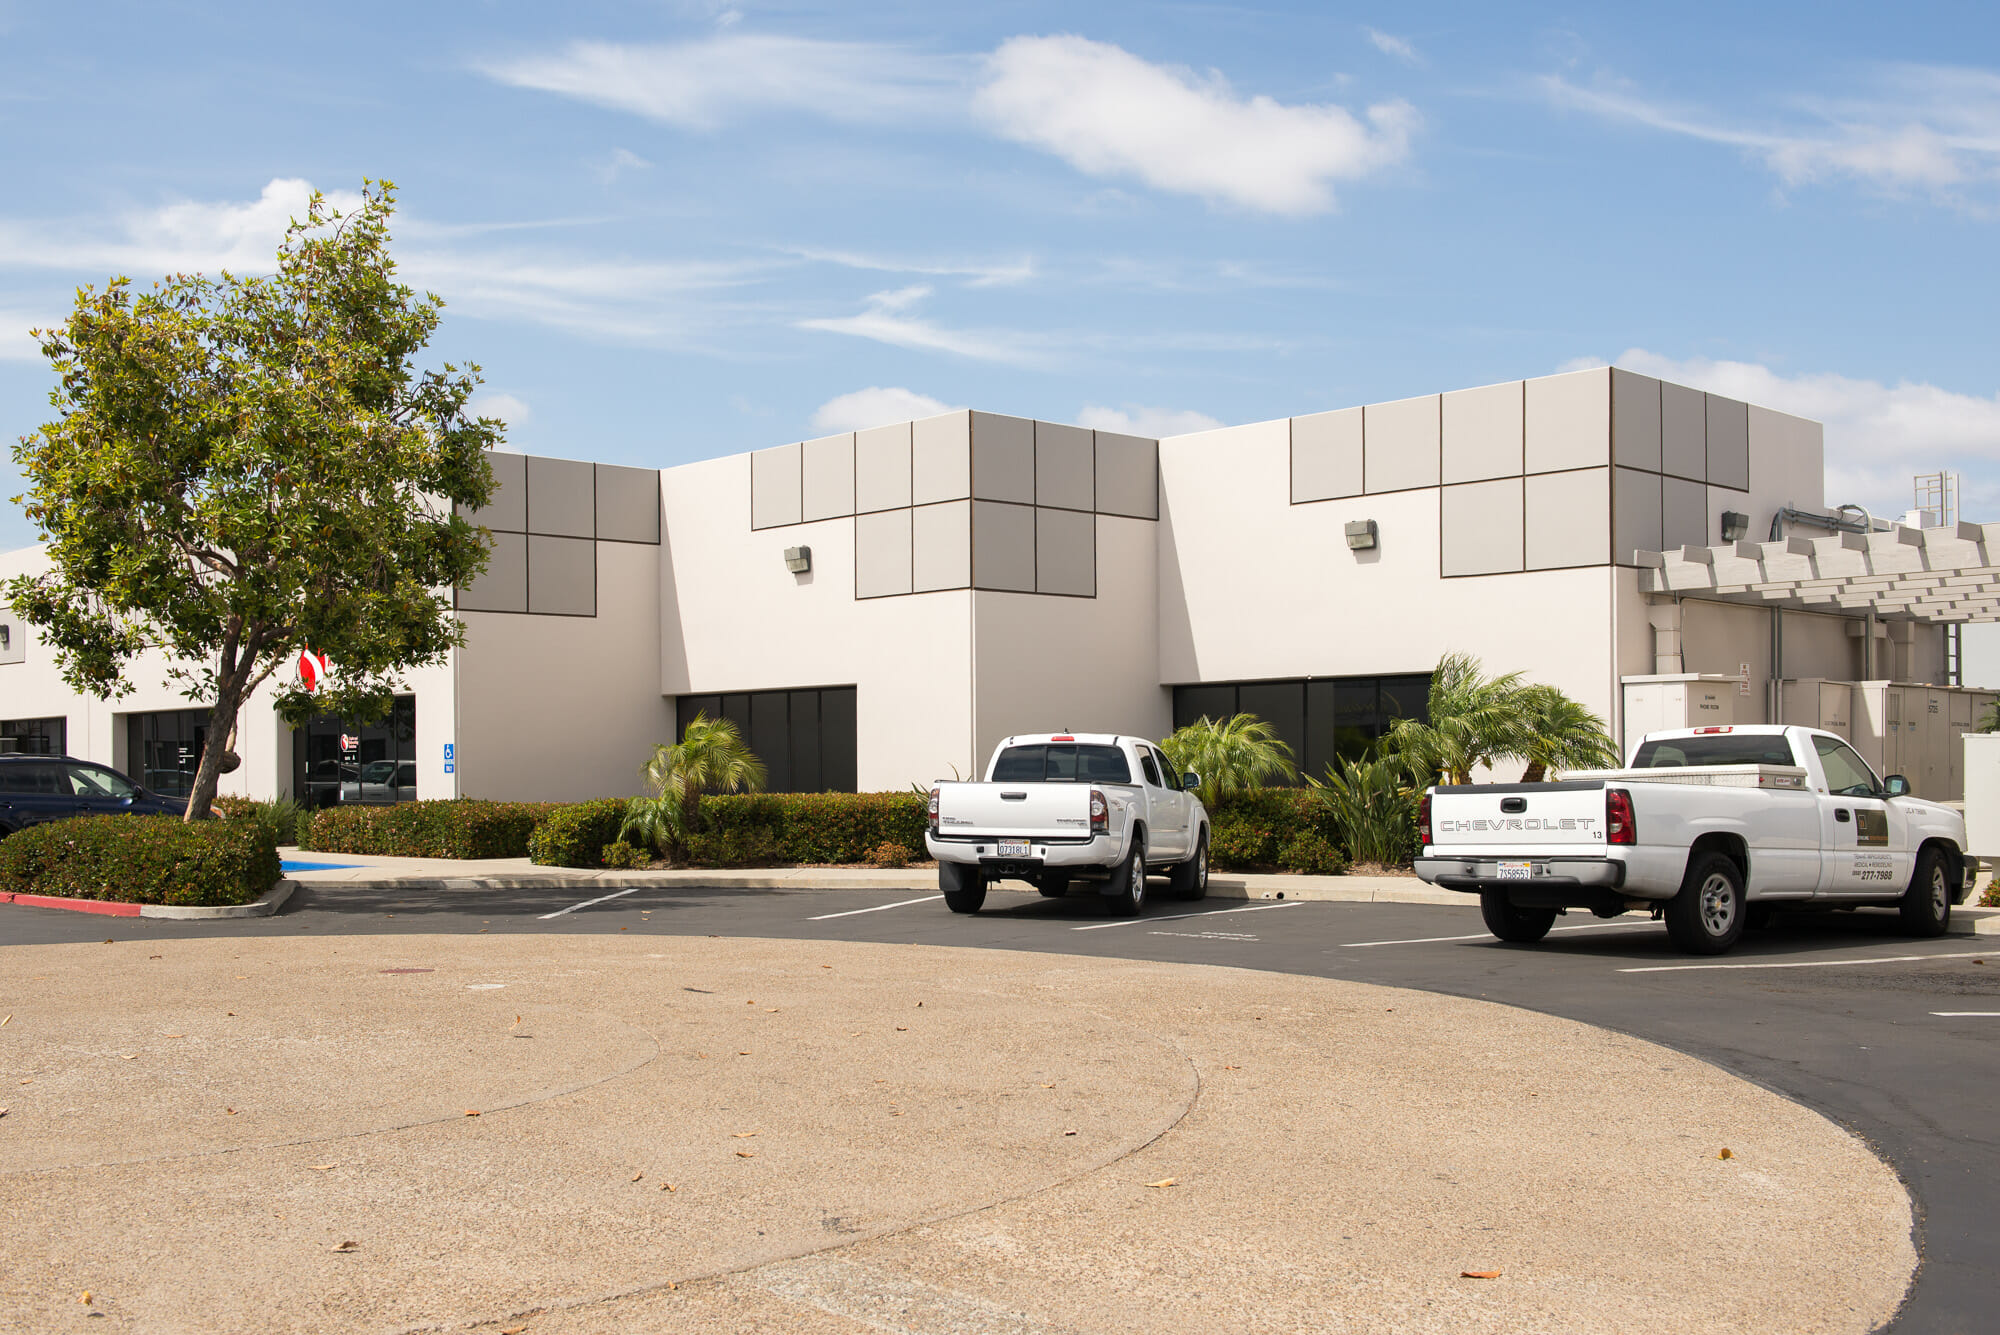 Centrally located in the area's most popular industrial market, the 107,000 SF Kearny Mesa Business Center has easy access to the 163, 52, I-15 and I-805 freeways.